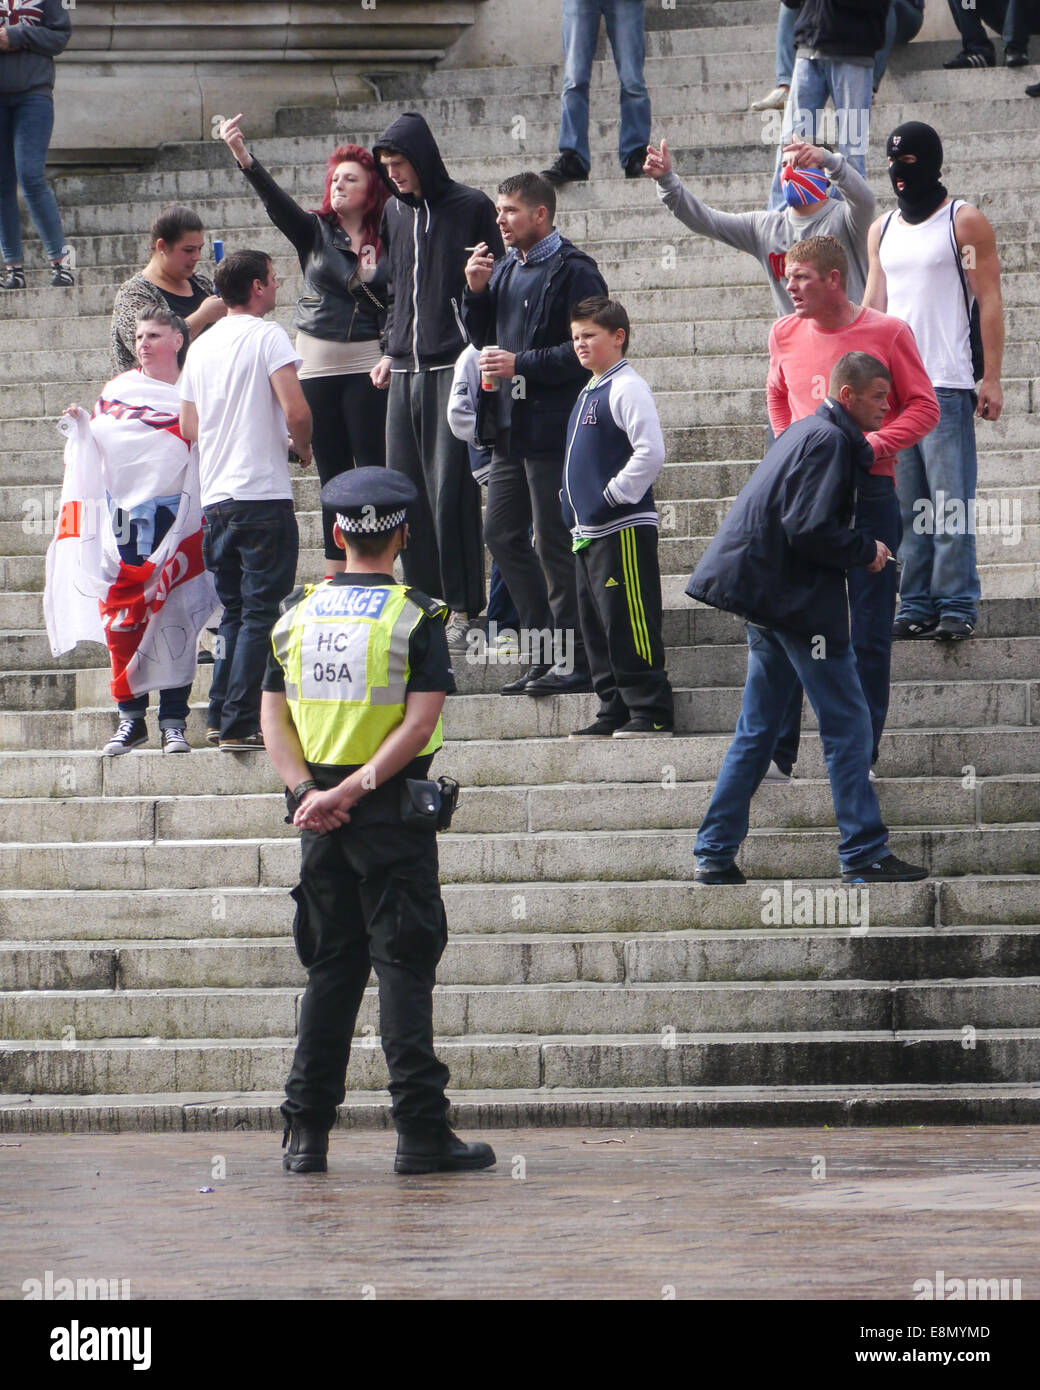 A Policeman stands in front of a group of young members of the English Defence League as they taunt anti fascist - Stock Image